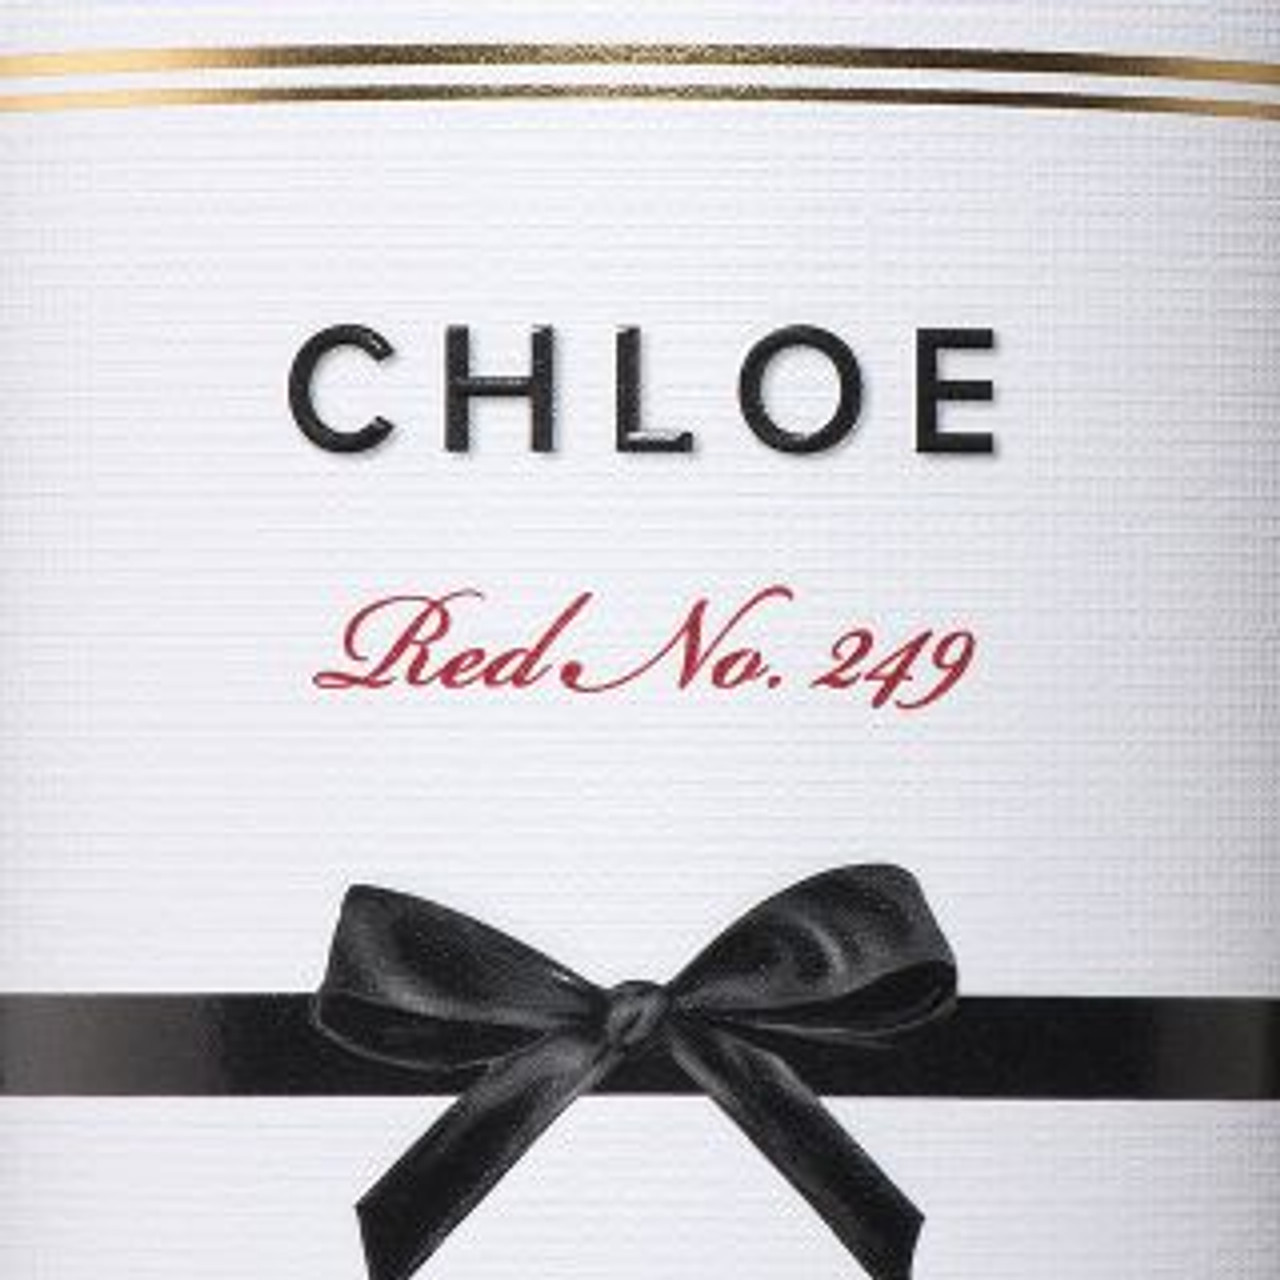 Chloe Red Blend No. 249 750ml